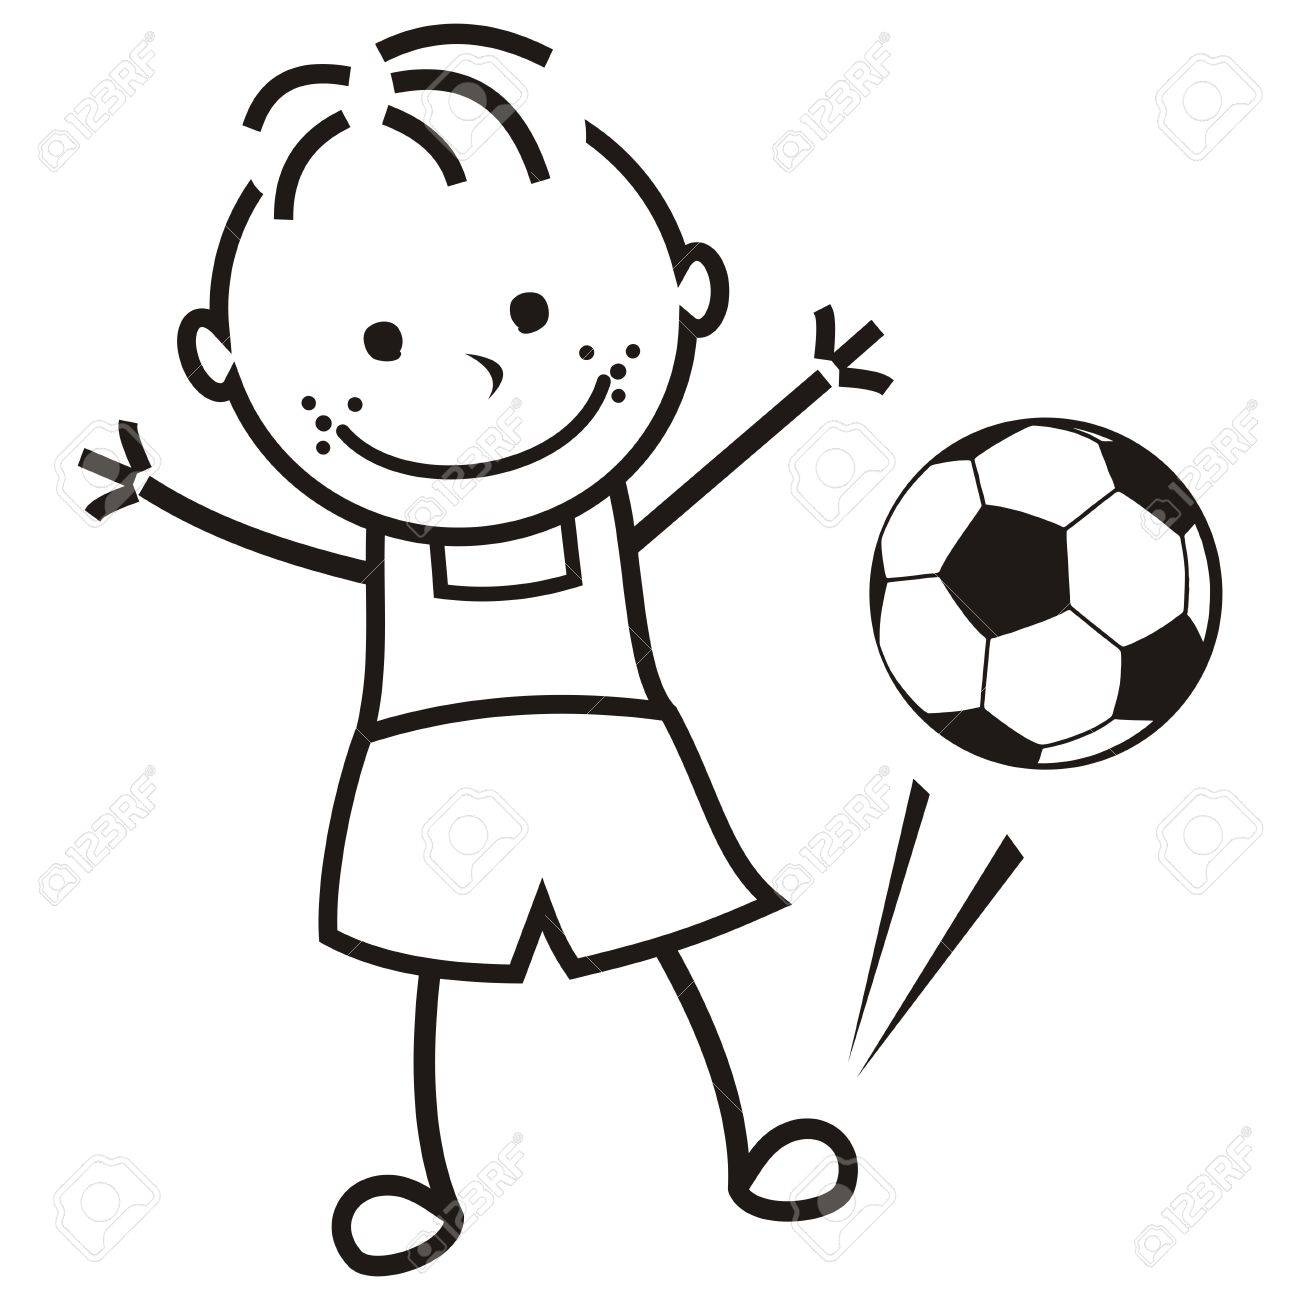 Boy And Soccer Ball, Vector Illustration, Coloring Page Royalty Free ...